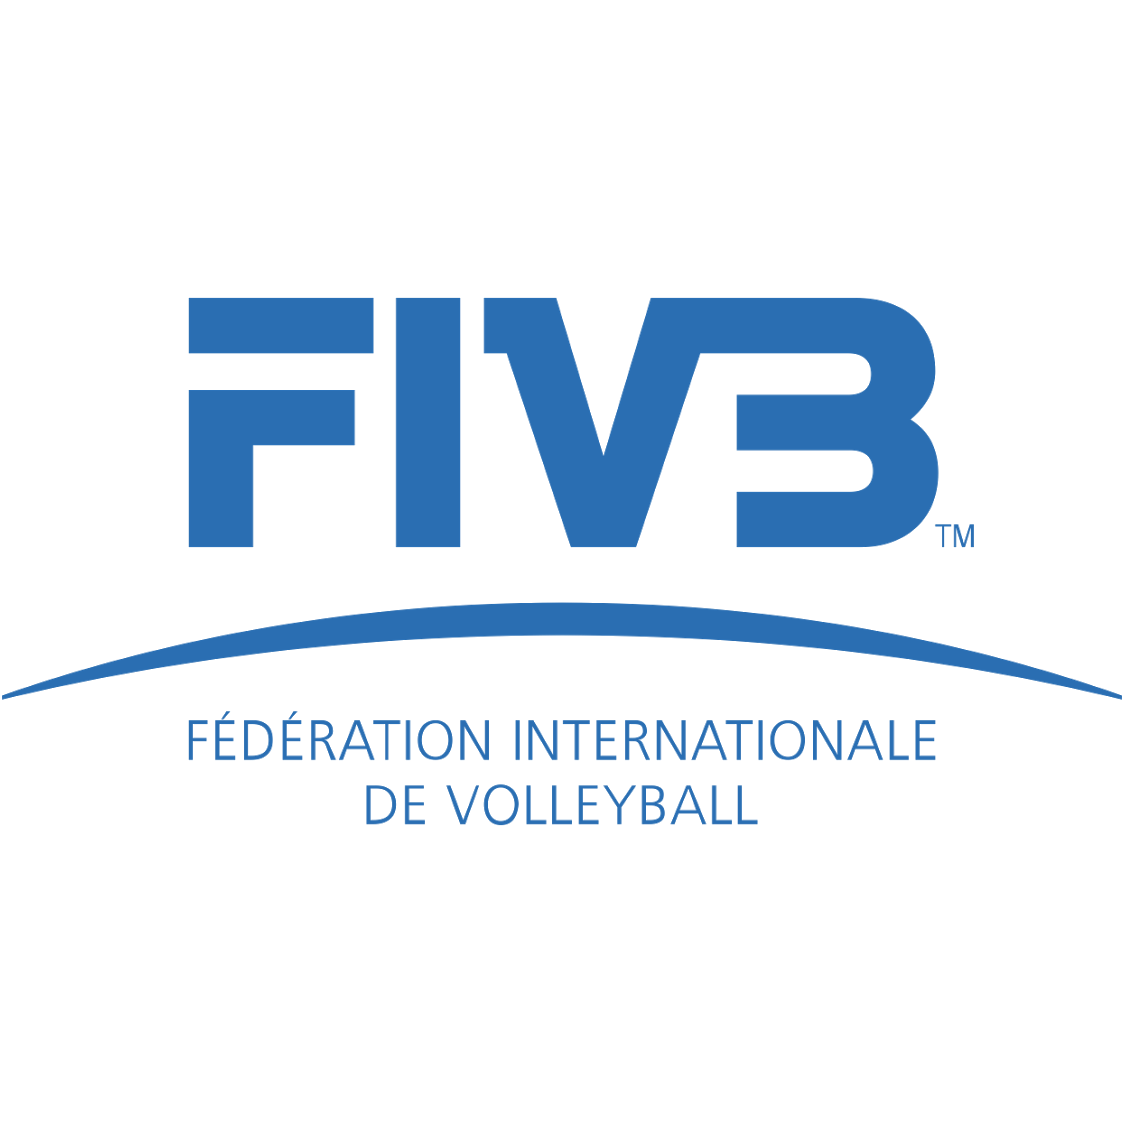 2014 FIVB Volleyball Men's Club World Championship